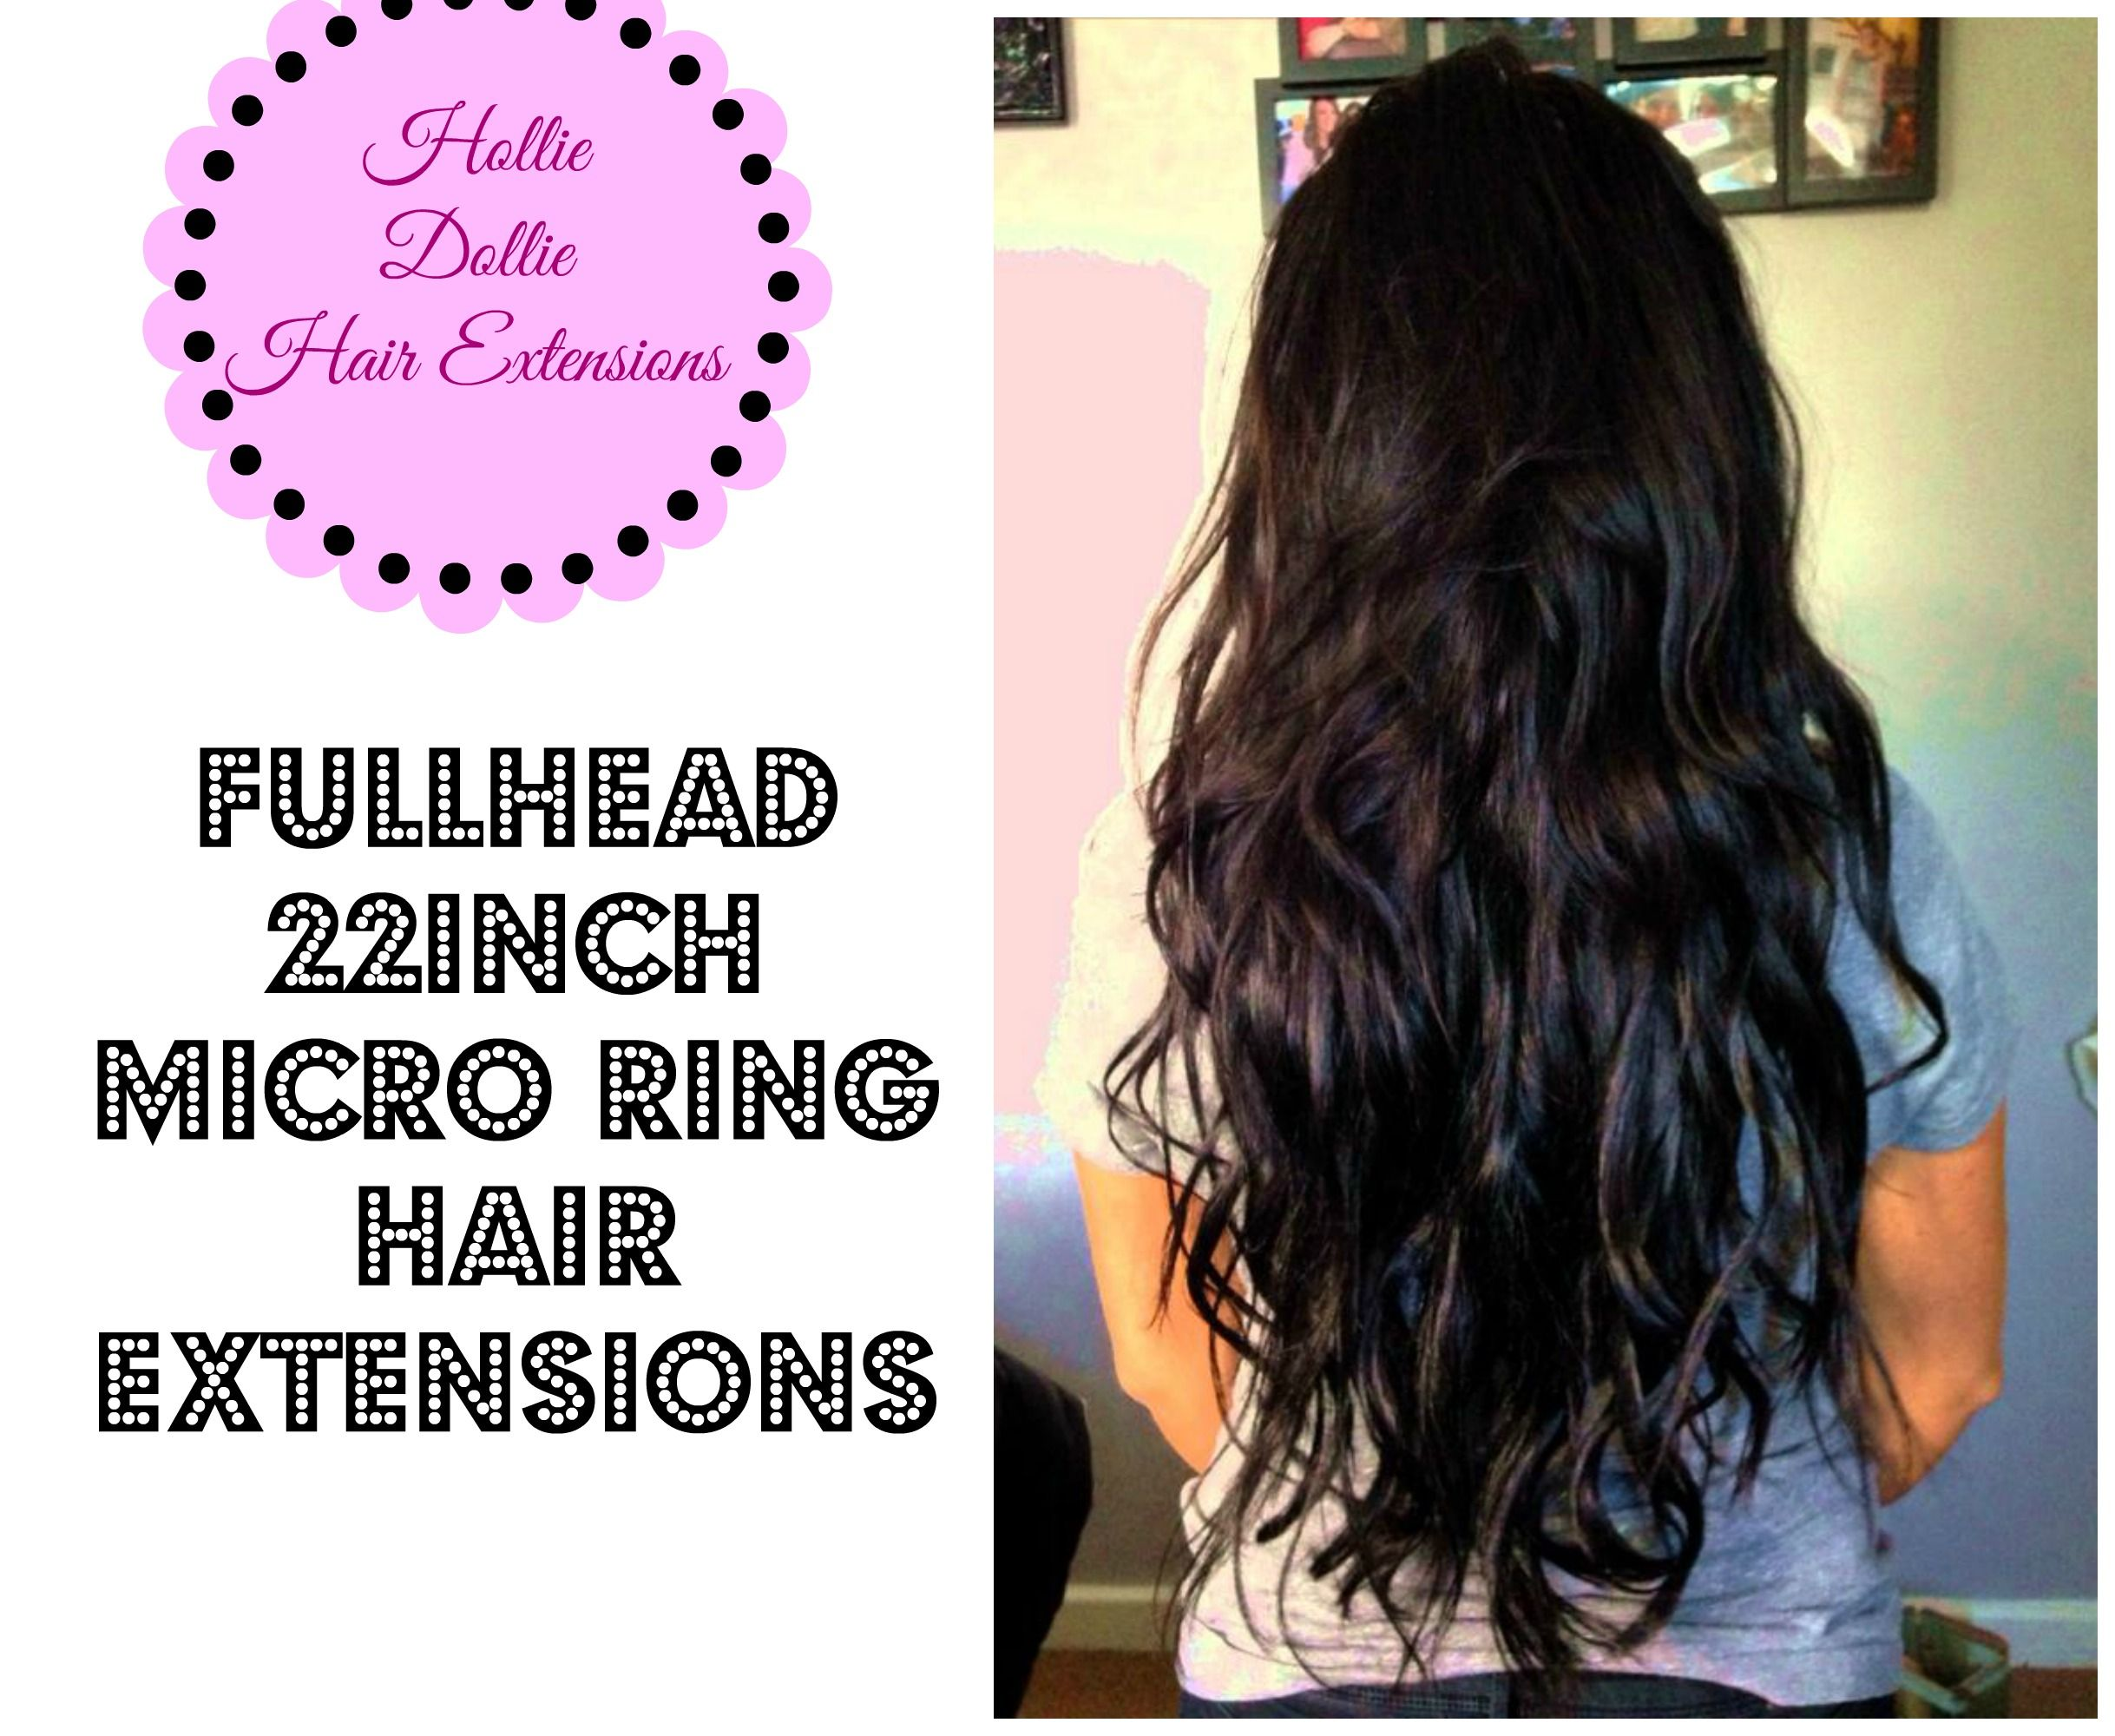 22inch Mirco Ring Hair Extensions By Hollie Dollie Hair Extend It